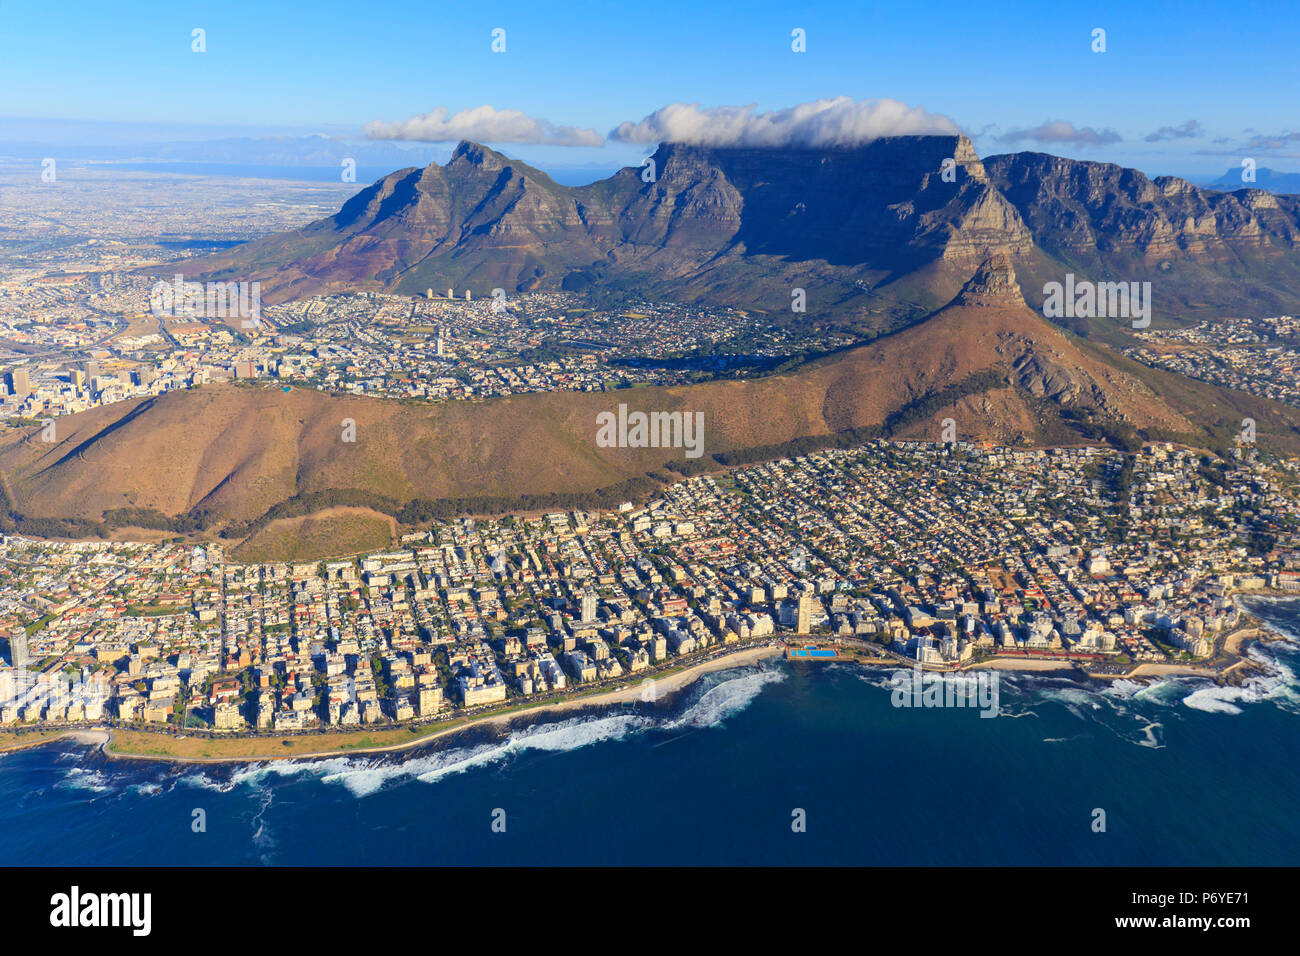 South Africa, Western Cape, Cape Town, Aerial View of Cape Town and Table Mountain - Stock Image